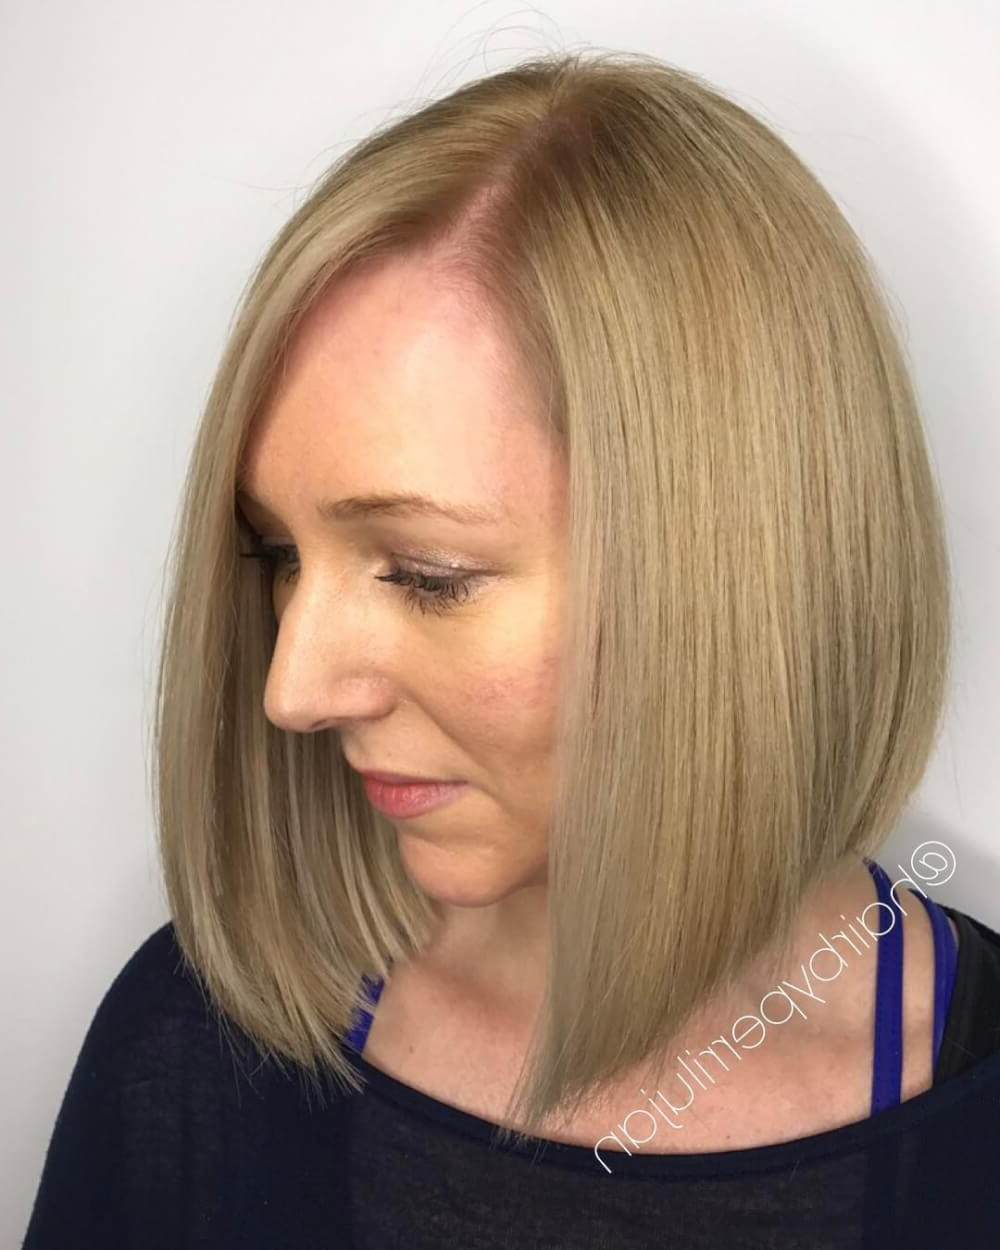 49 Chic Short Bob Hairstyles & Haircuts For Women In 2018 Intended For Edgy Short Bob Haircuts (View 10 of 25)